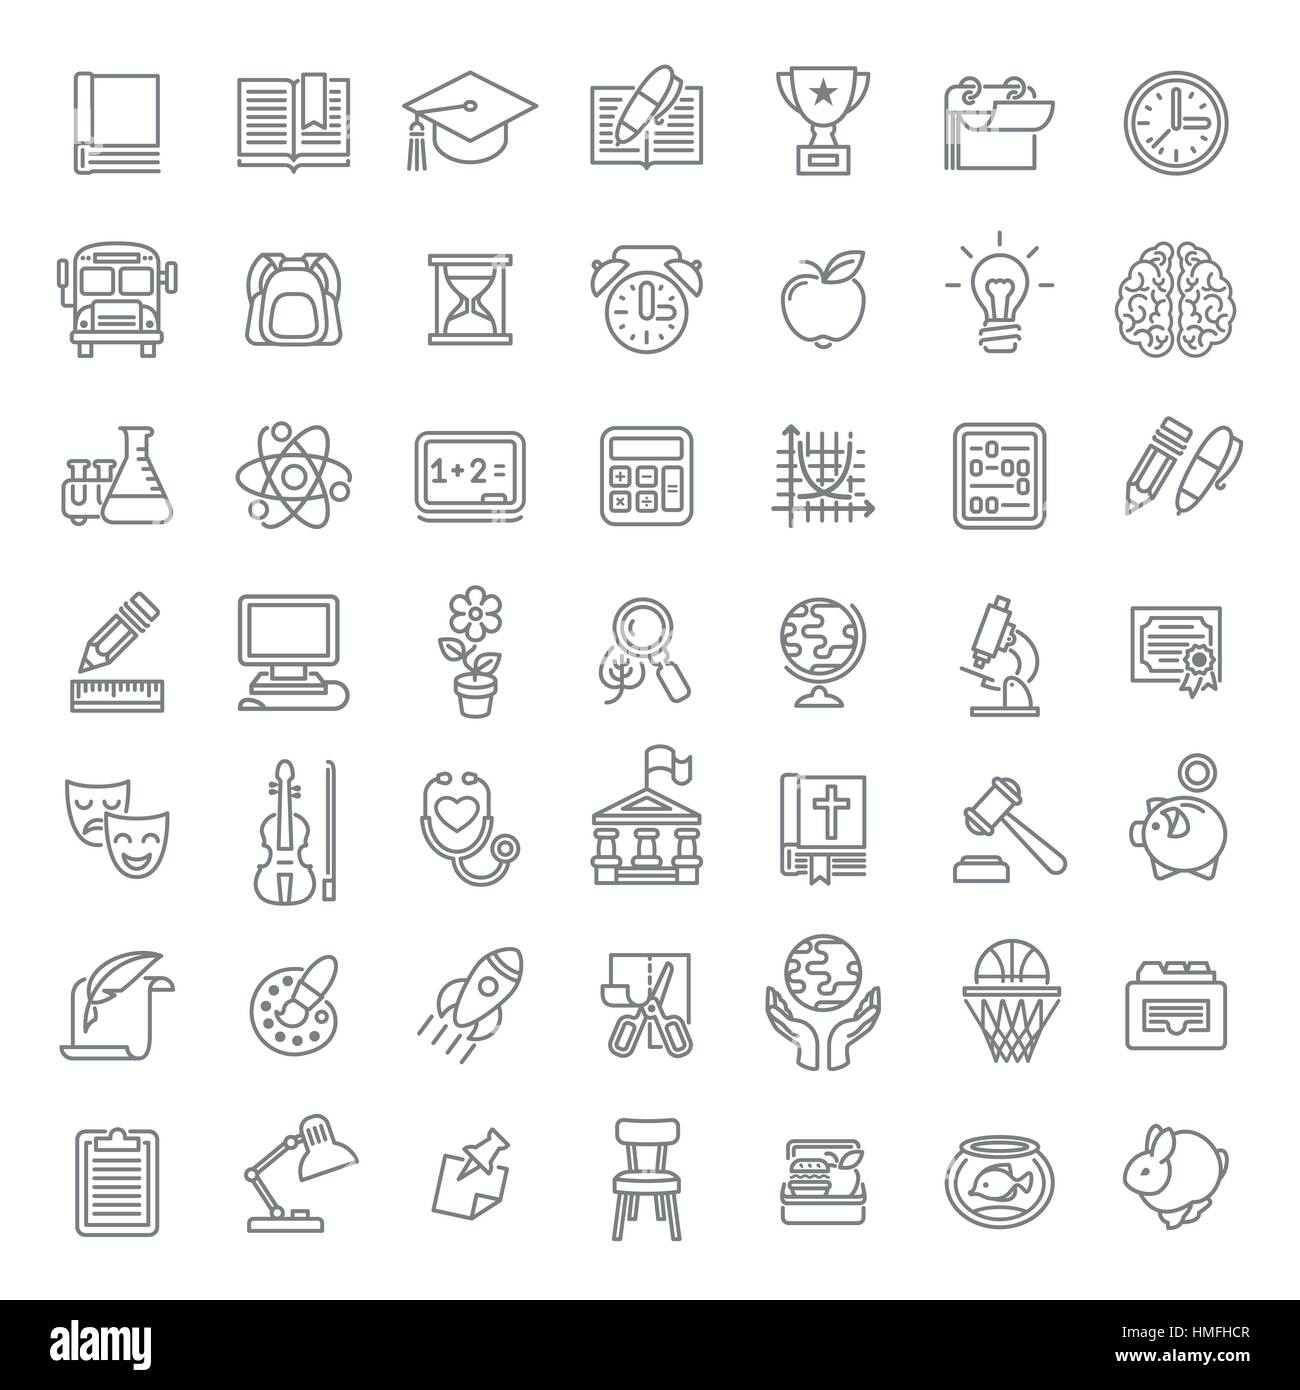 Set of modern flat line art vector icons of school subjects, activities, education and science symbols on white. - Stock Vector